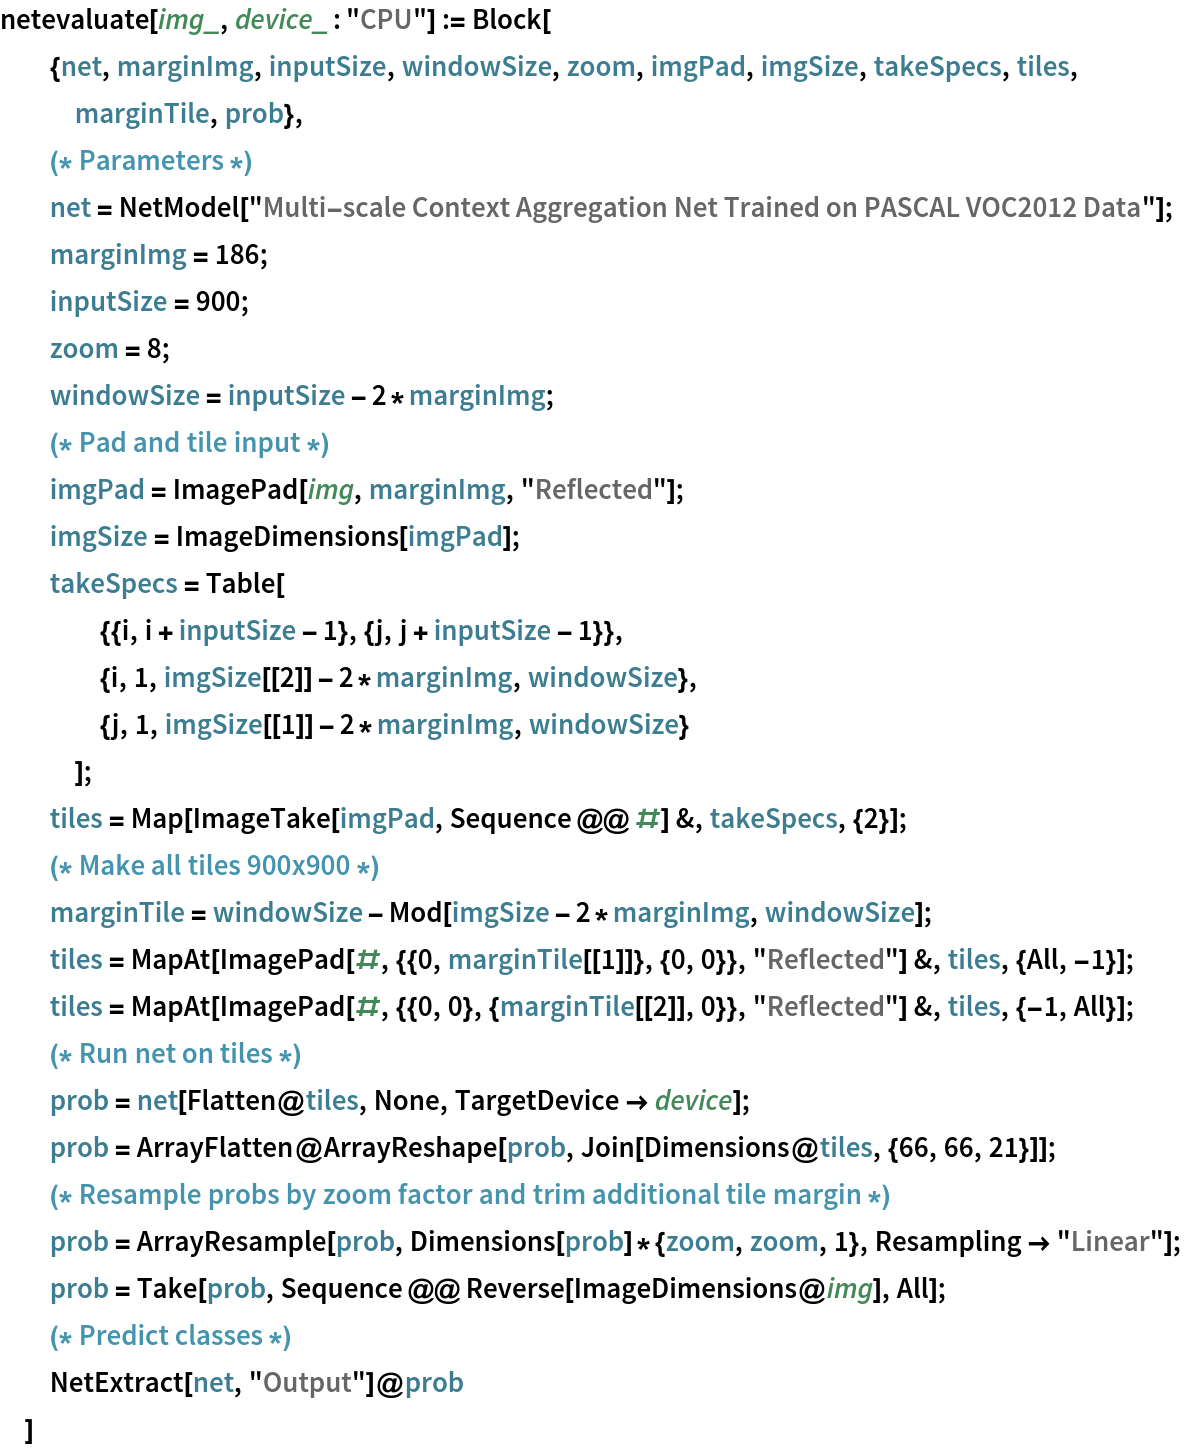 """netevaluate[img_, device_ : """"CPU""""] := Block[   {net, marginImg, inputSize, windowSize, zoom, imgPad, imgSize, takeSpecs, tiles, marginTile, prob},   (* Parameters *) net = NetModel[     """"Multi-scale Context Aggregation Net Trained on PASCAL VOC2012 \ Data""""];   marginImg = 186;   inputSize = 900;   zoom = 8;   windowSize = inputSize - 2*marginImg;   (* Pad and tile input *) imgPad = ImagePad[img, marginImg, """"Reflected""""];   imgSize = ImageDimensions[imgPad];   takeSpecs = Table[     {{i, i + inputSize - 1}, {j, j + inputSize - 1}},     {i, 1, imgSize[[2]] - 2*marginImg, windowSize},     {j, 1, imgSize[[1]] - 2*marginImg, windowSize}     ];   tiles = Map[ImageTake[imgPad, Sequence @@ #] &, takeSpecs, {2}];   (* Make all tiles 900x900 *) marginTile = windowSize - Mod[imgSize - 2*marginImg, windowSize];   tiles = MapAt[ImagePad[#, {{0, marginTile[[1]]}, {0, 0}}, """"Reflected""""] &, tiles, {All, -1}];   tiles = MapAt[ImagePad[#, {{0, 0}, {marginTile[[2]], 0}}, """"Reflected""""] &, tiles, {-1, All}];   (* Run net on tiles *) prob = net[Flatten@tiles, None, TargetDevice -> device];   prob = ArrayFlatten@     ArrayReshape[prob, Join[Dimensions@tiles, {66, 66, 21}]];   (* Resample probs by zoom factor and trim additional tile margin *) prob = ArrayResample[prob, Dimensions[prob]*{zoom, zoom, 1}, Resampling -> """"Linear""""];   prob = Take[prob, Sequence @@ Reverse[ImageDimensions@img], All];   (* Predict classes *)   NetExtract[net, """"Output""""]@prob   ]"""